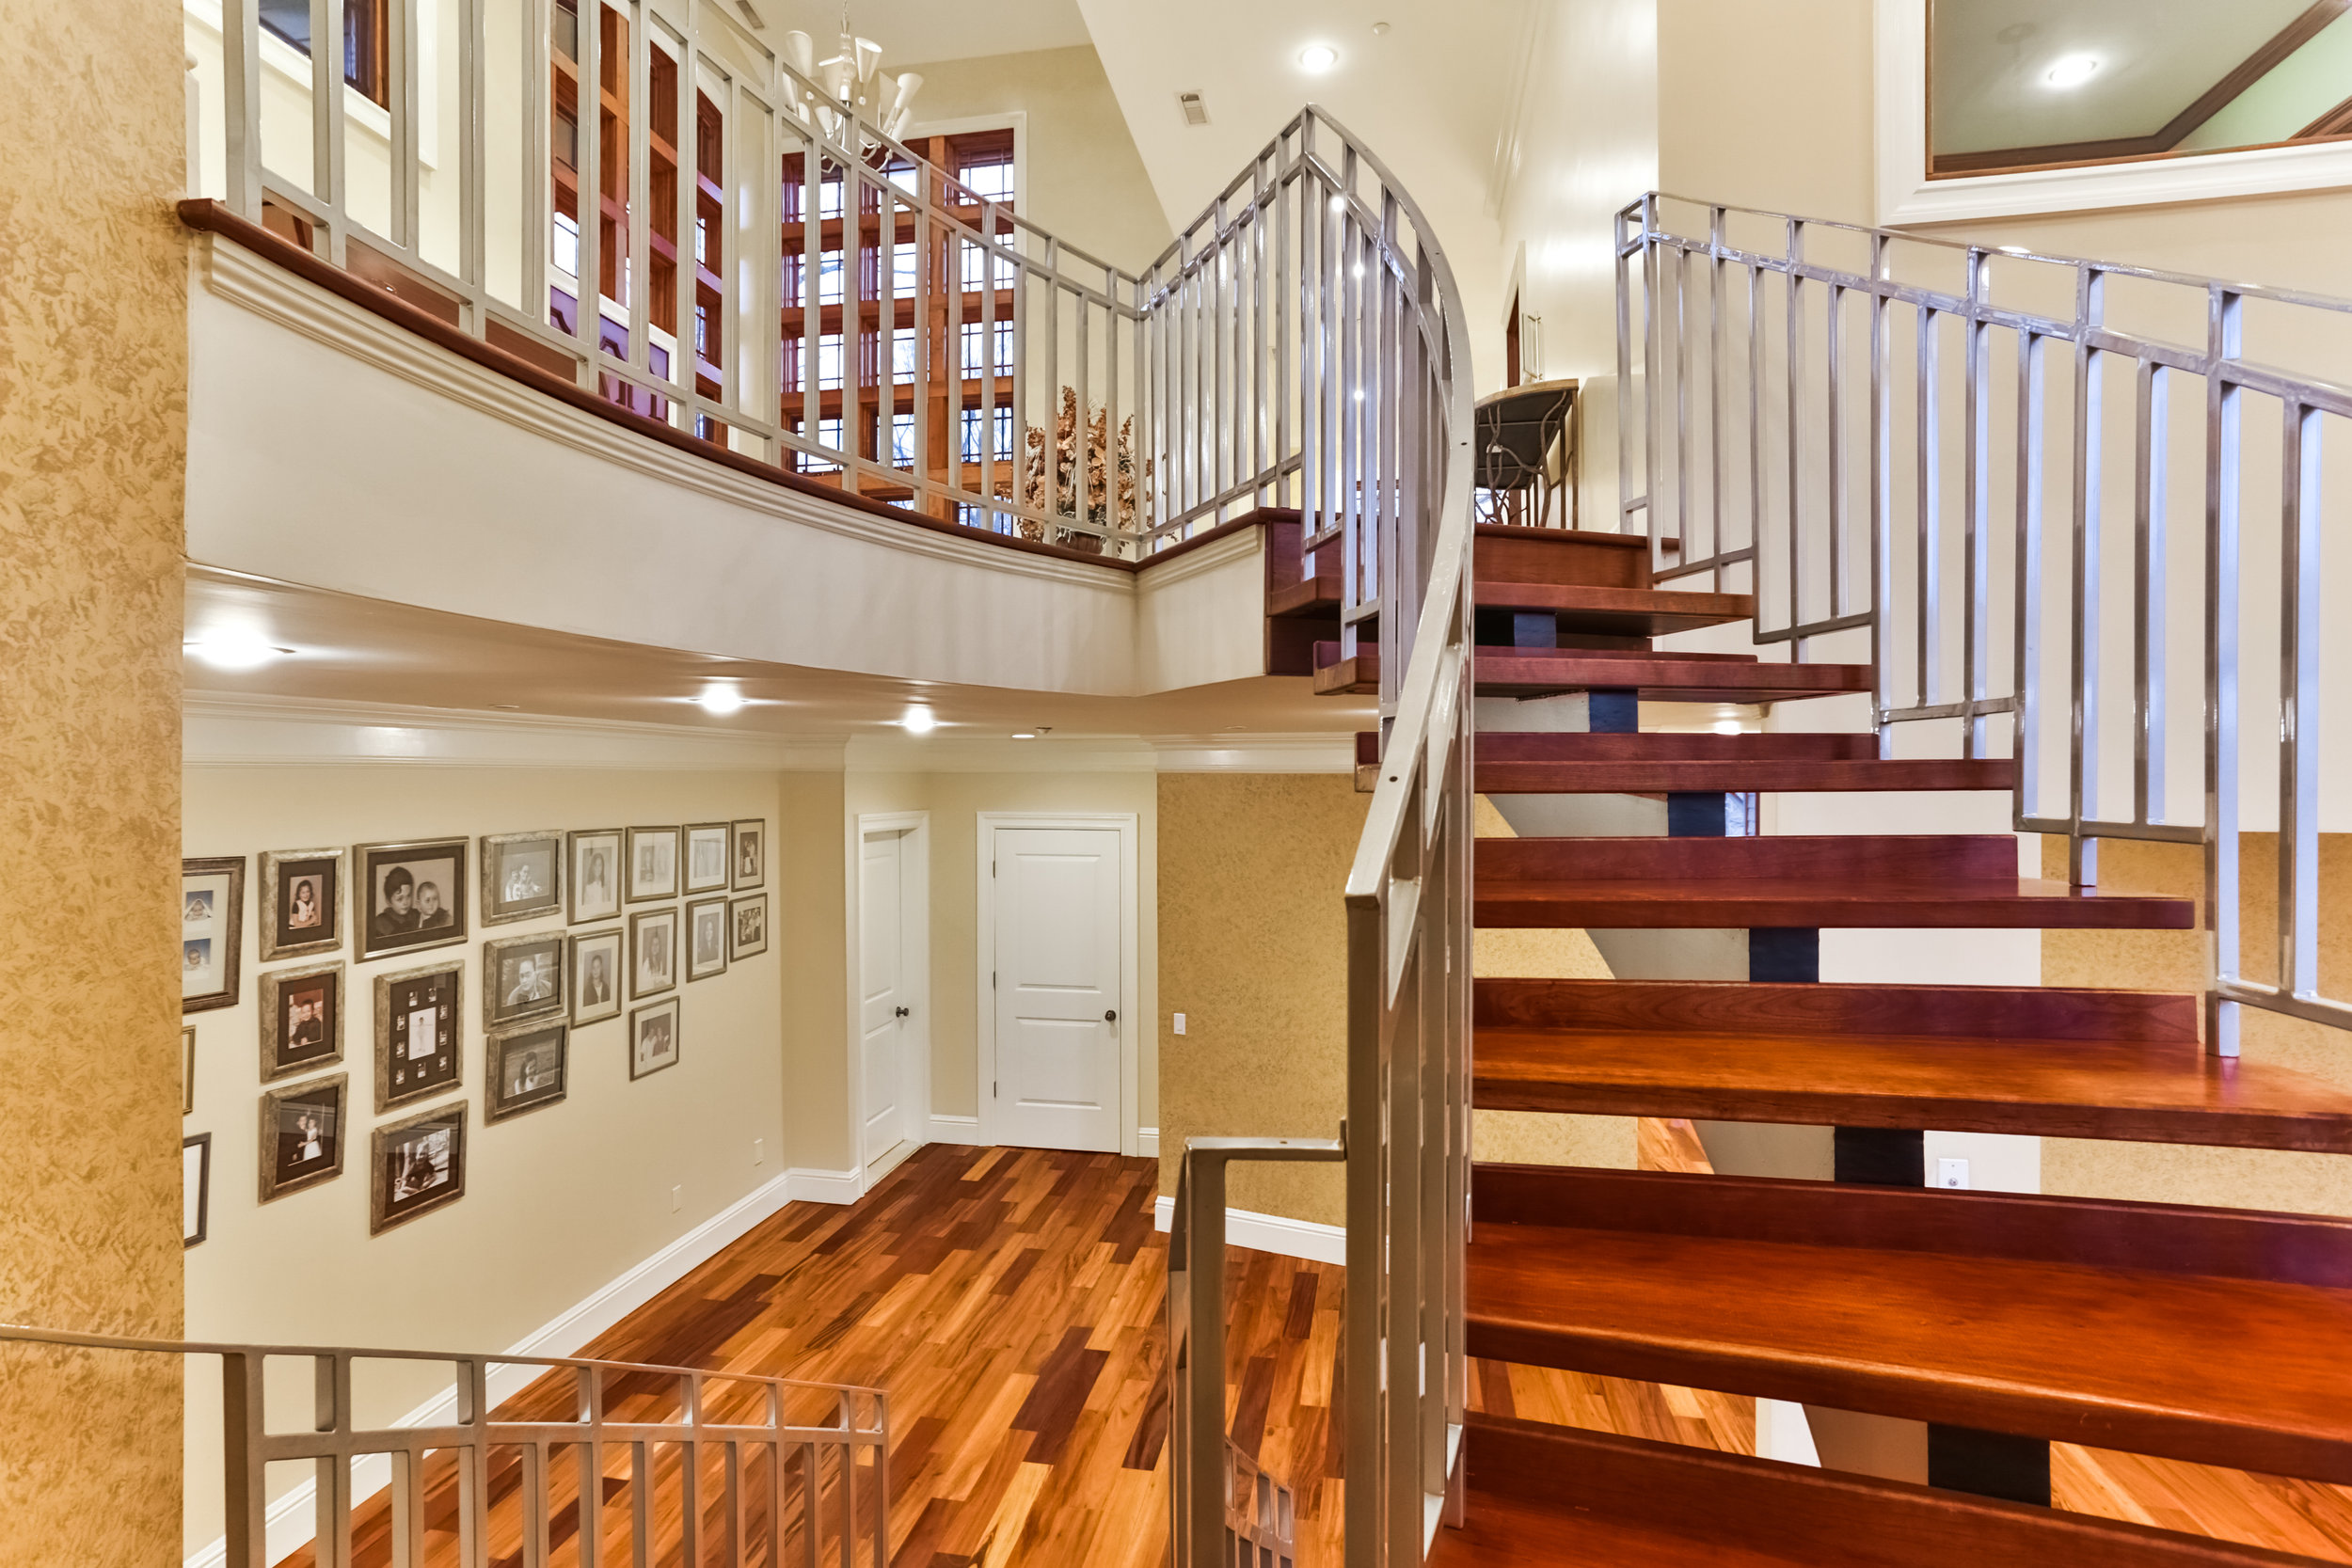 Handcrafted spiral stairs case leading from the upstairs foyer to the downstairs area